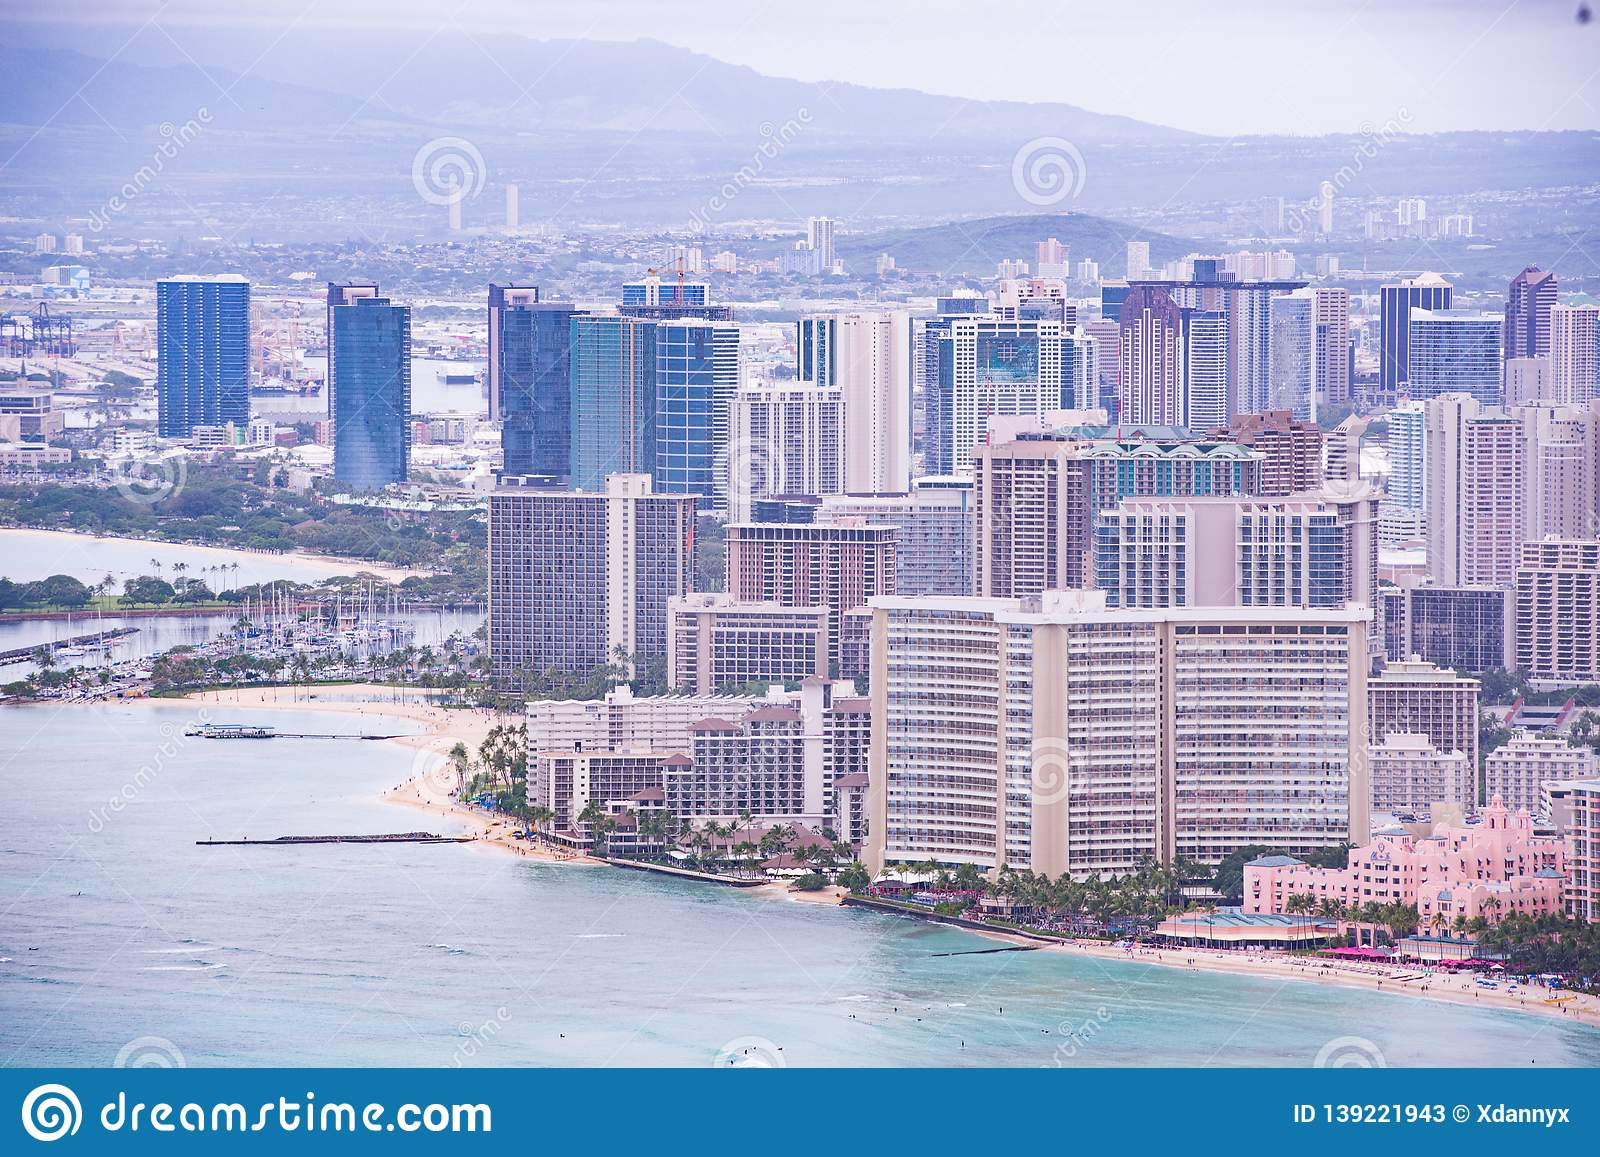 Aerial View Of Waikiki Beach And Buildings Stock Image